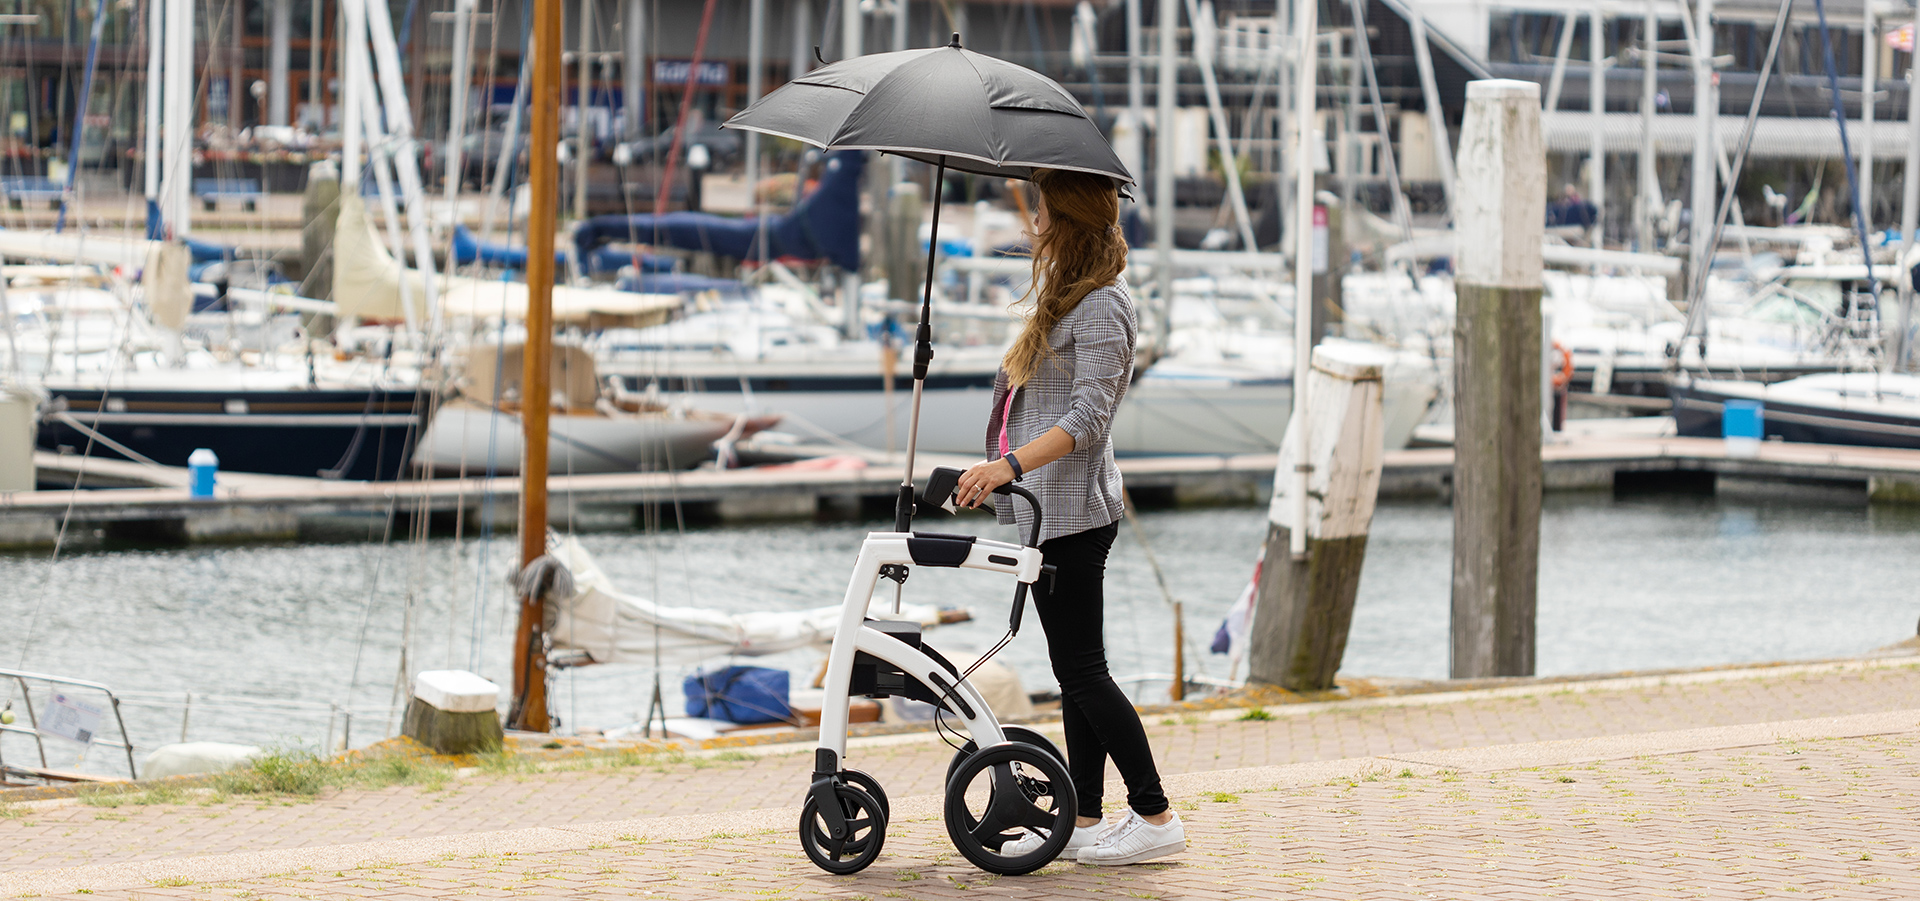 Walking upright with a Rollz Motion stable rollator and umbrella